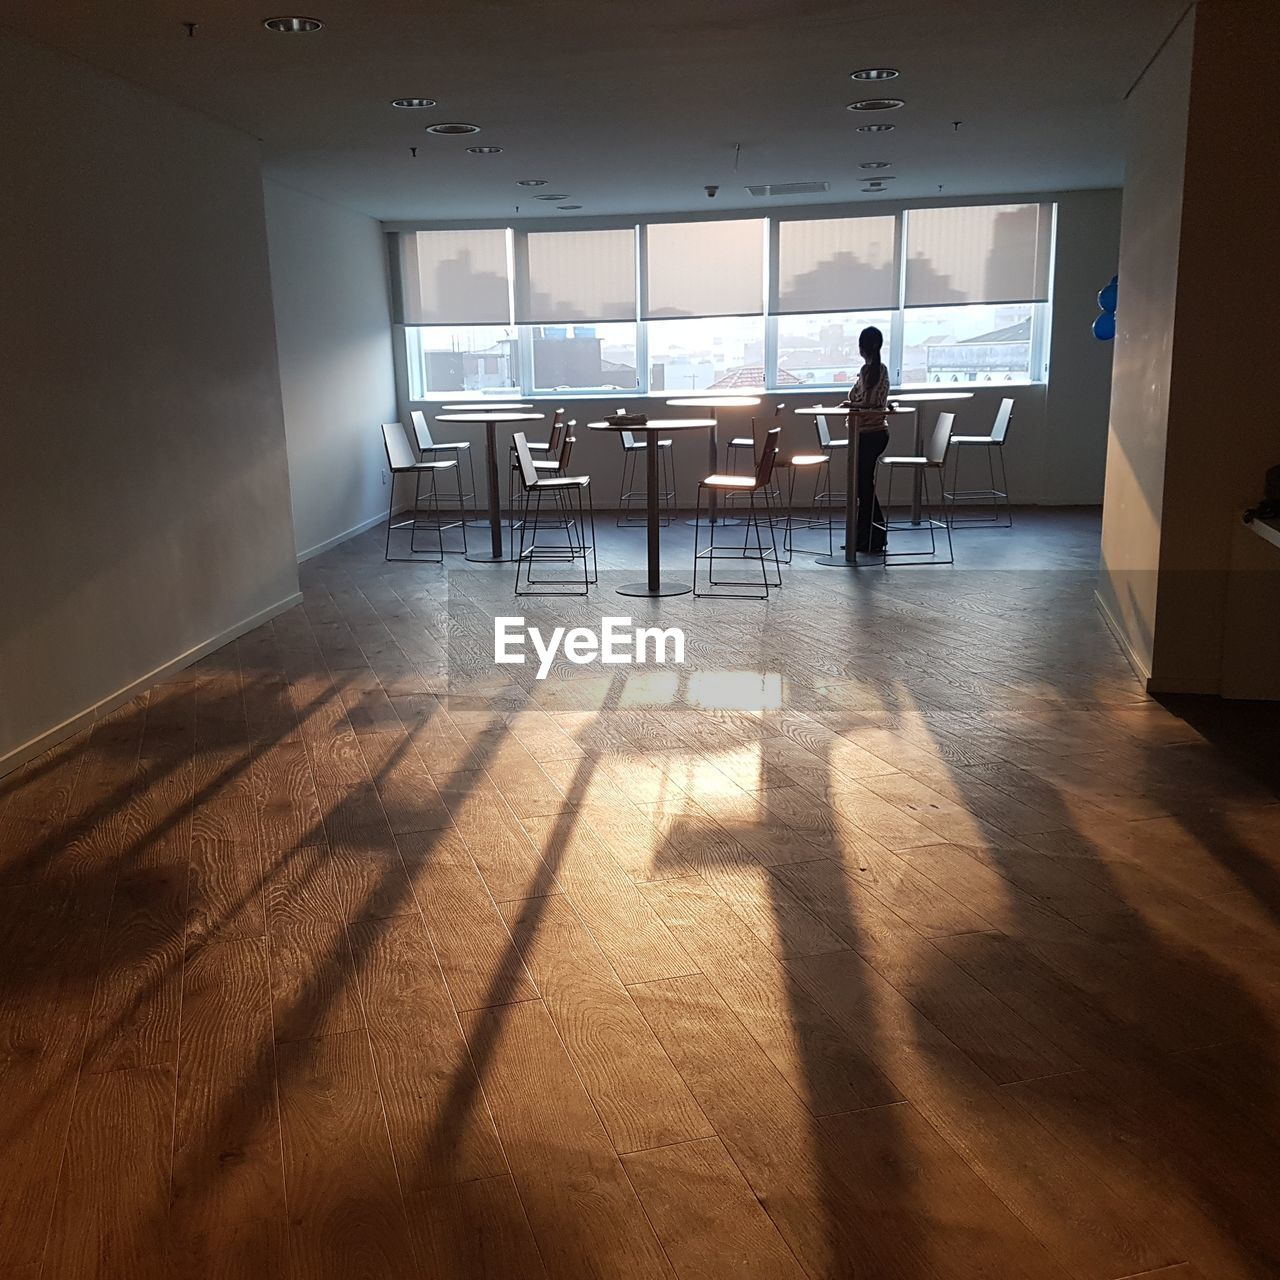 shadow, indoors, sunlight, real people, flooring, one person, window, standing, lifestyles, table, domestic room, adult, architecture, day, hardwood floor, full length, men, seat, office, wood, ceiling